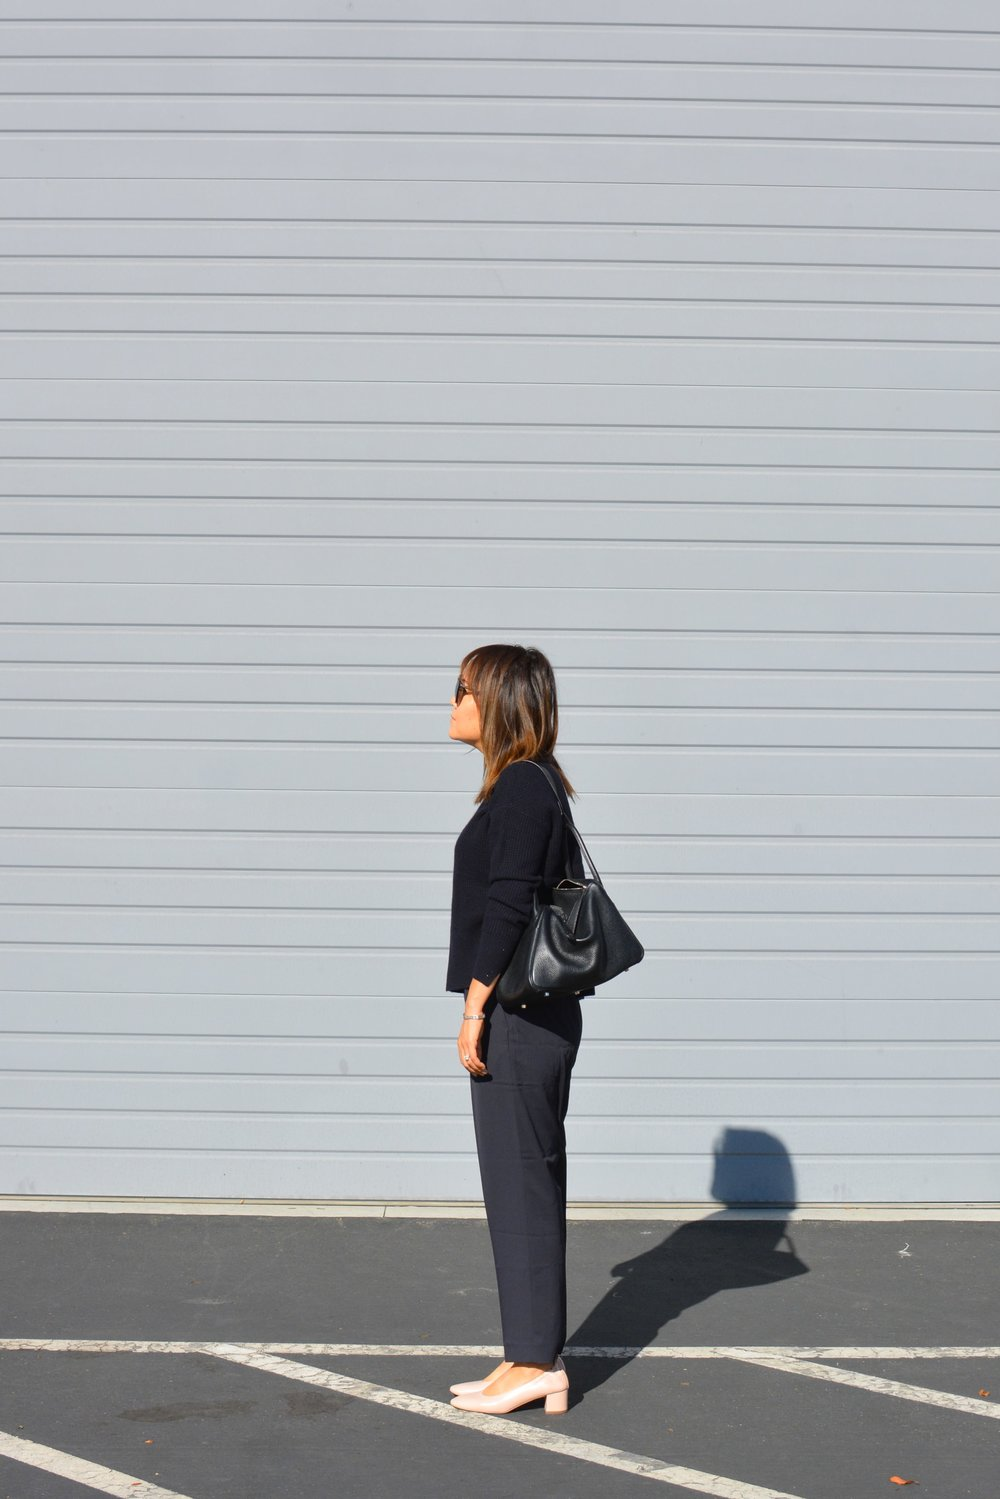 Everlane Review The Italian GoWeave Easy Pant (1 of 3)-min.jpg